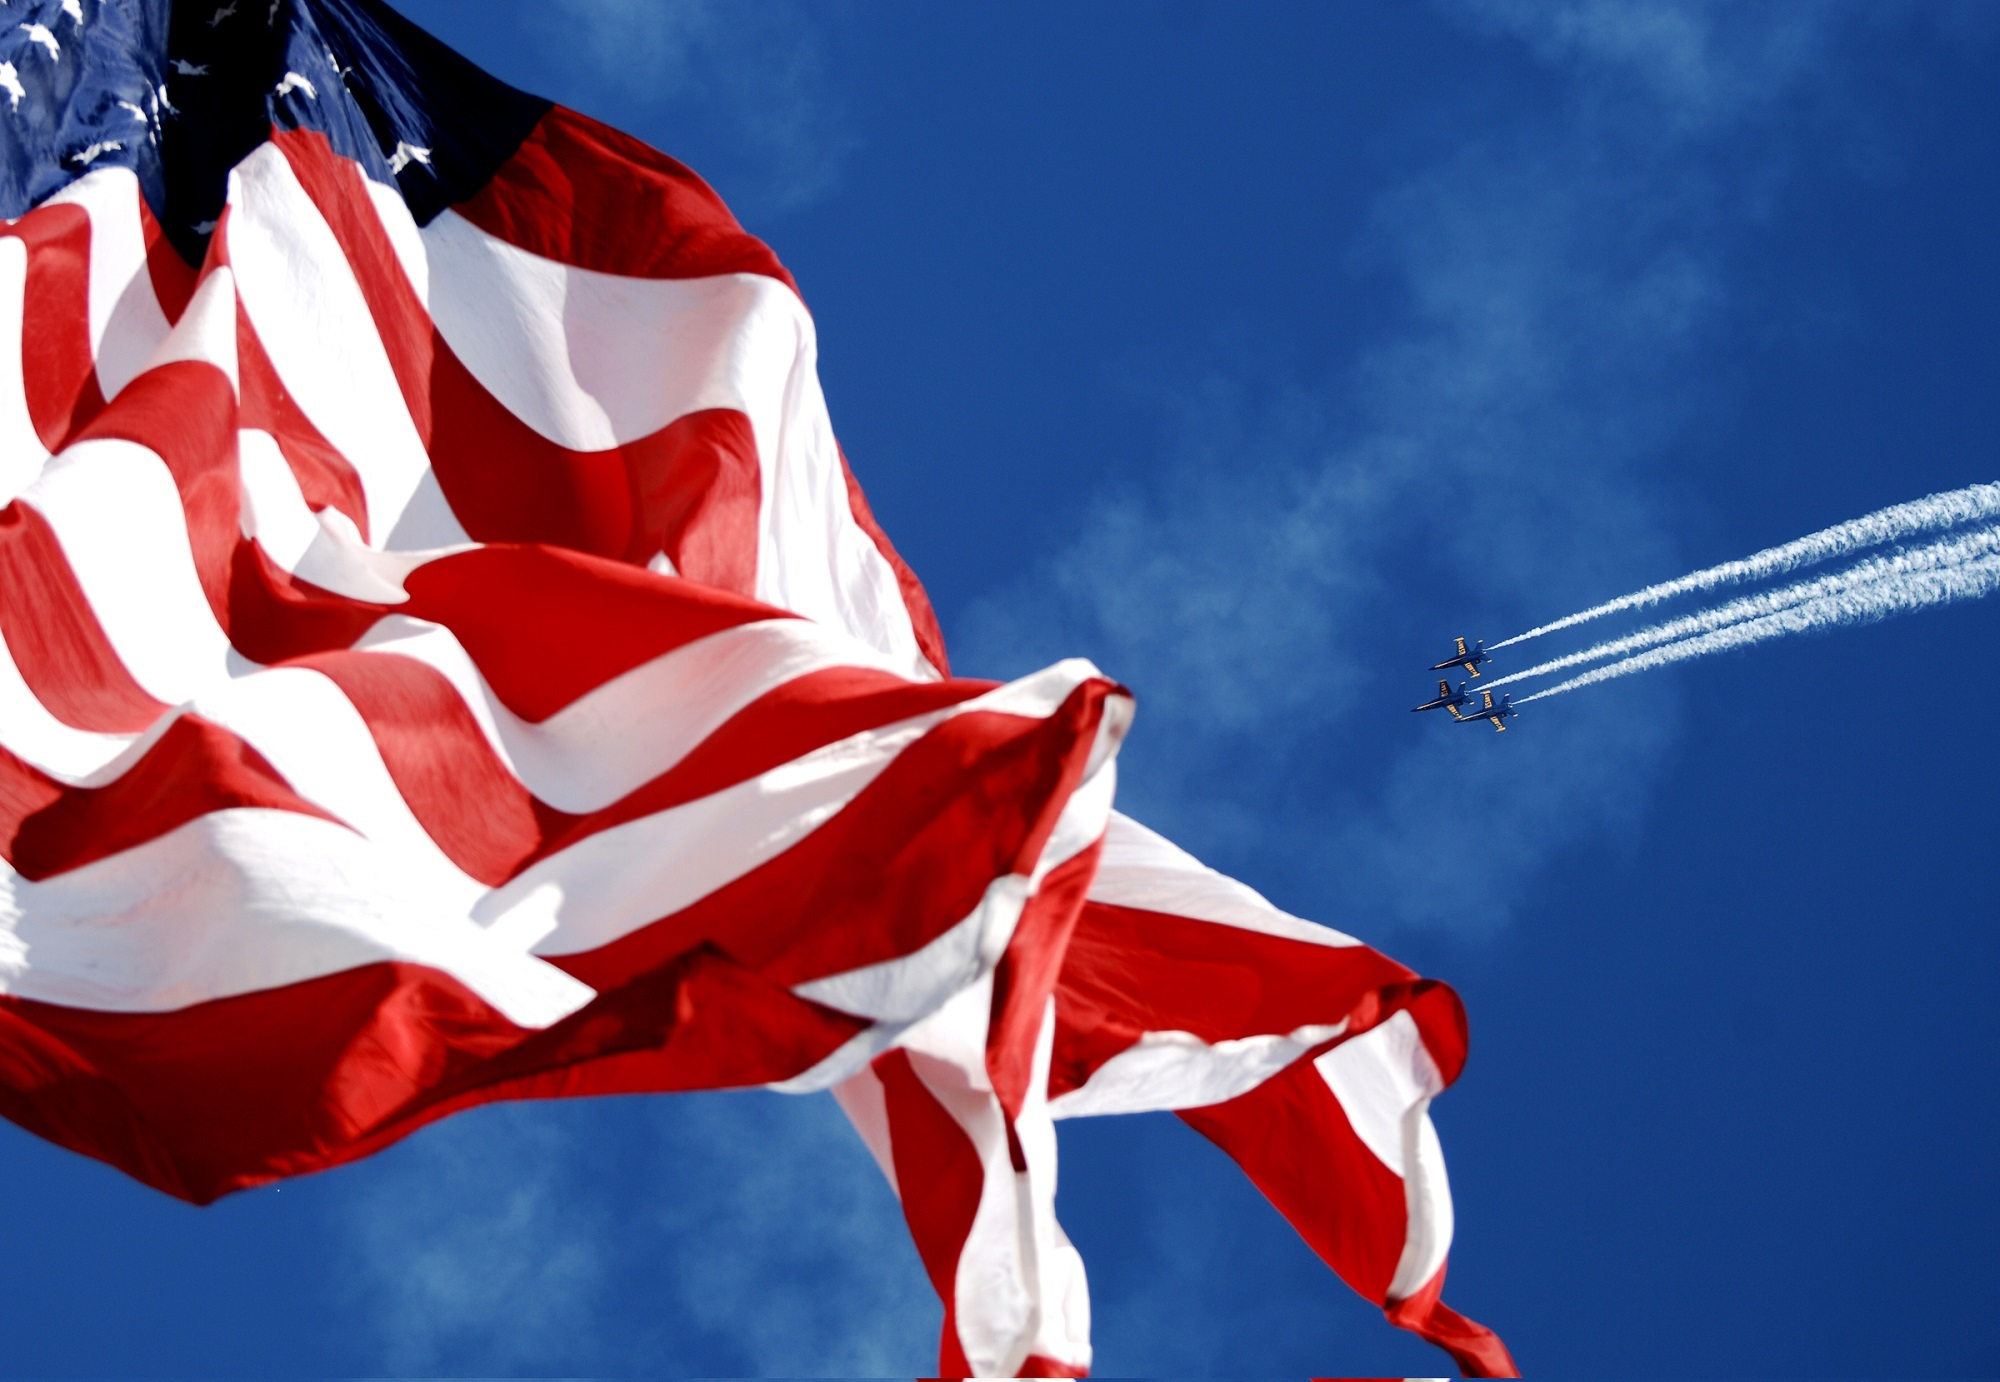 Flying over the american flag photo